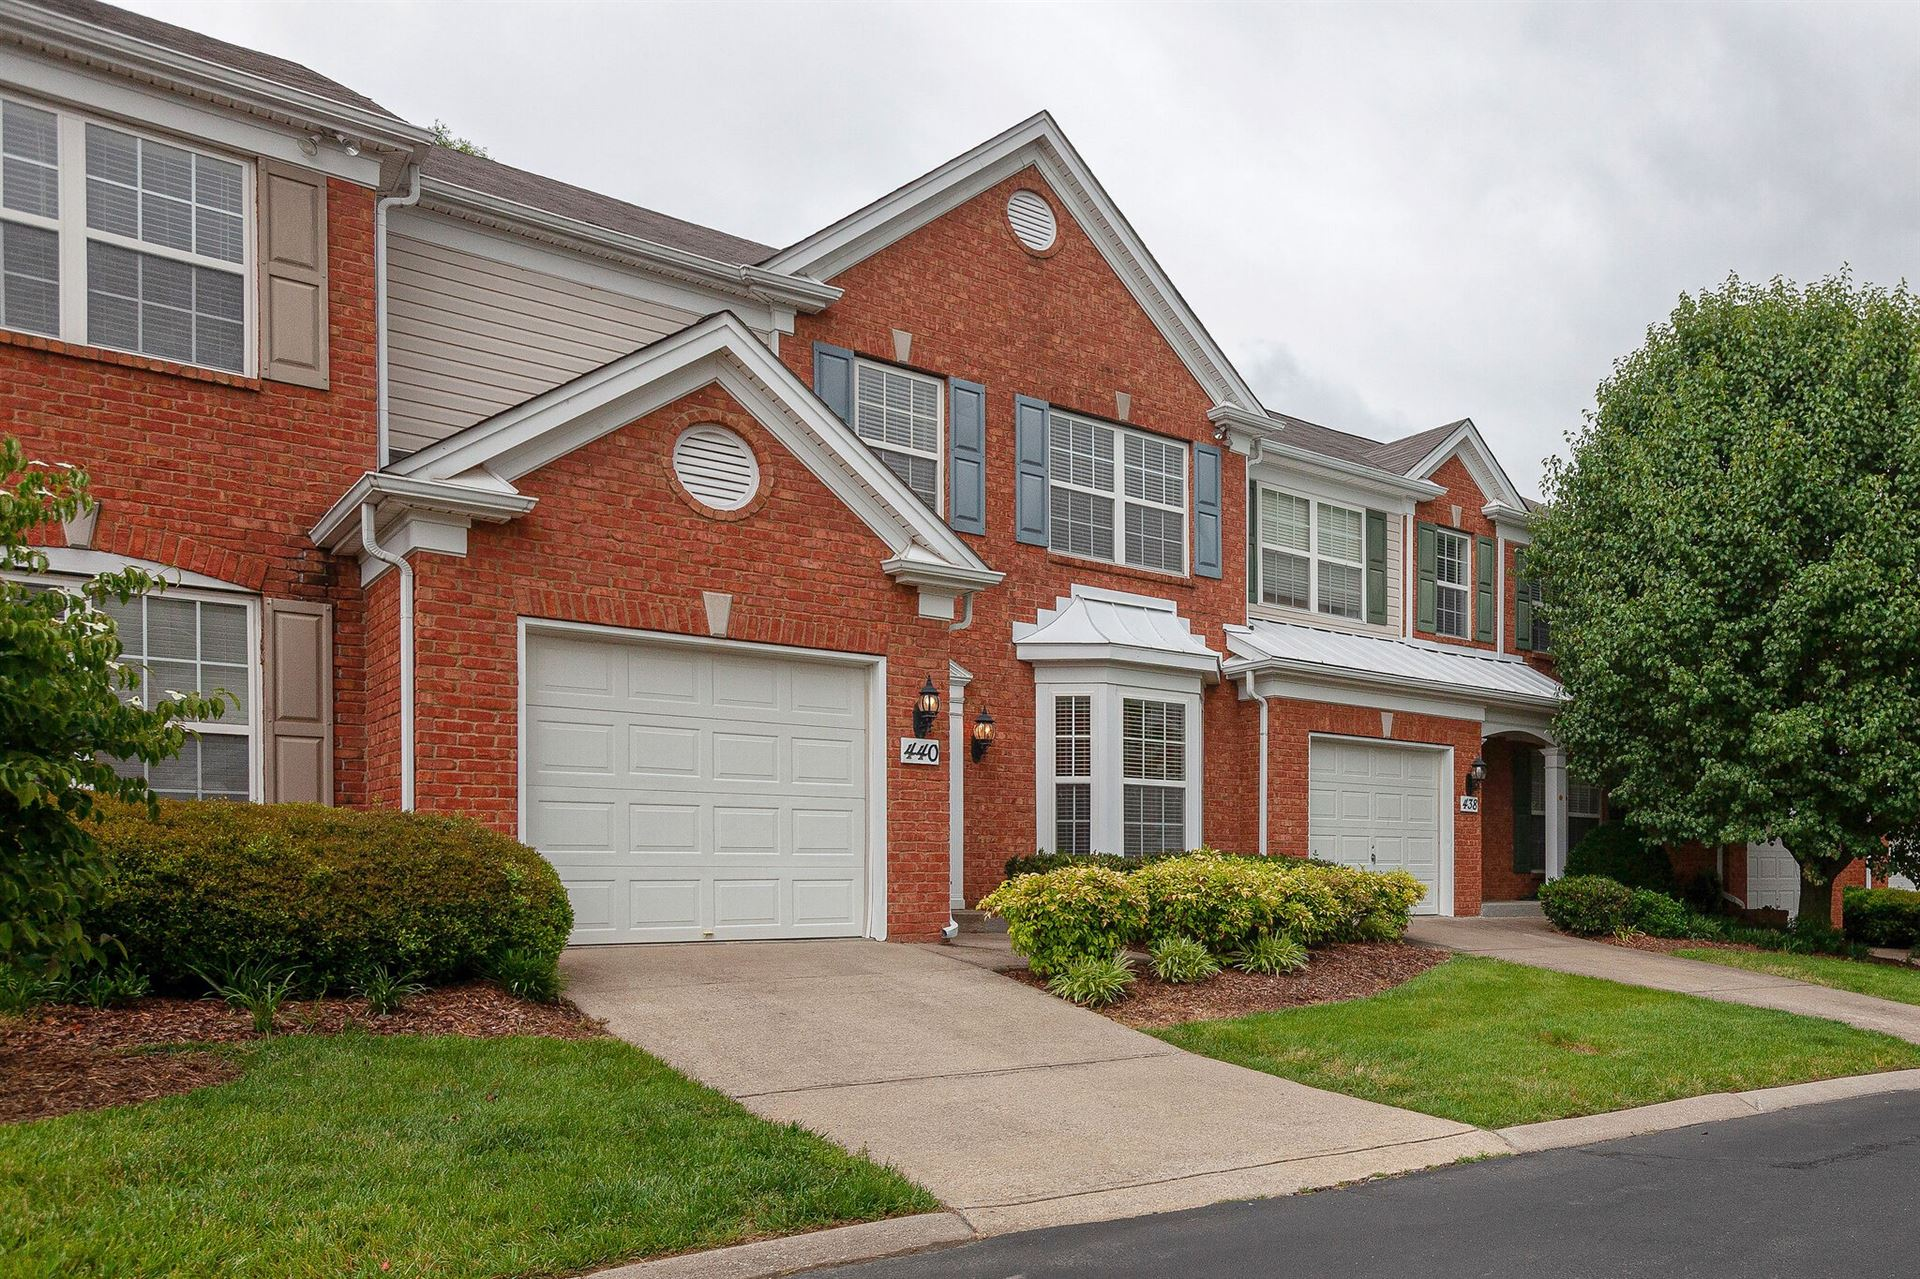 Photo of 440 Old Towne Dr #440, Brentwood, TN 37027 (MLS # 2152841)